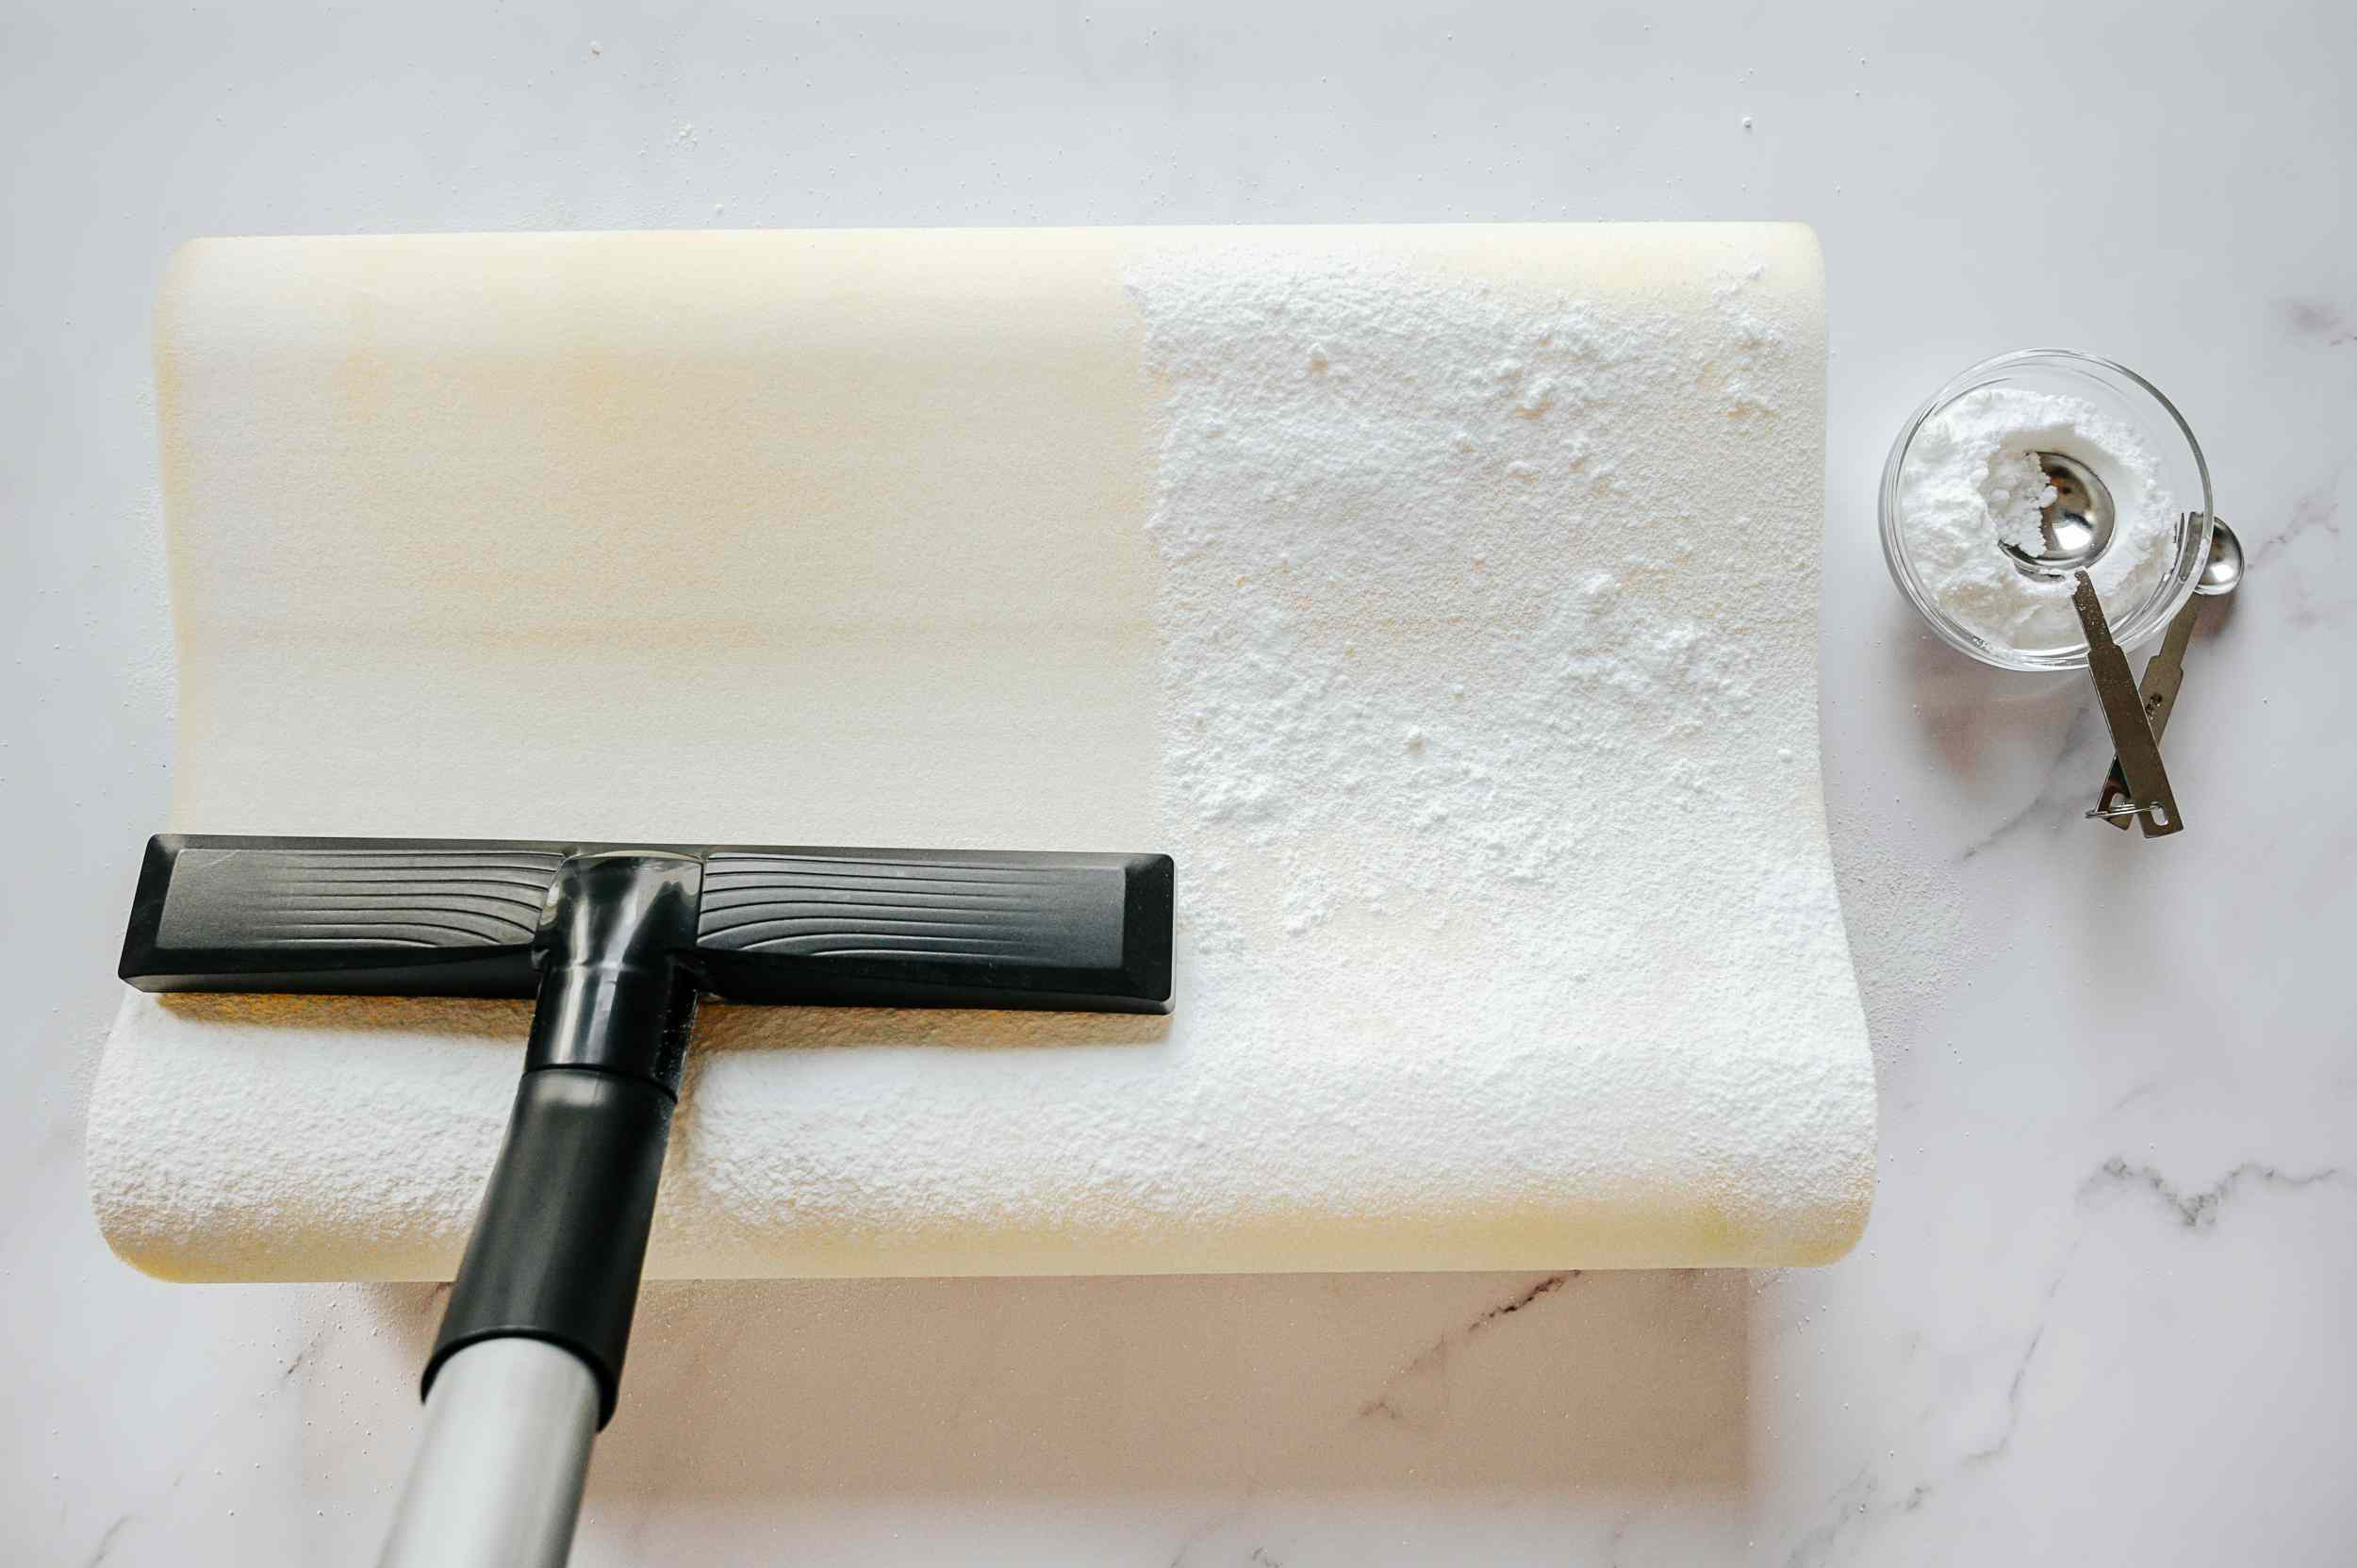 Memory foam bed pillow covered in baking soda and vacuumed for freshness